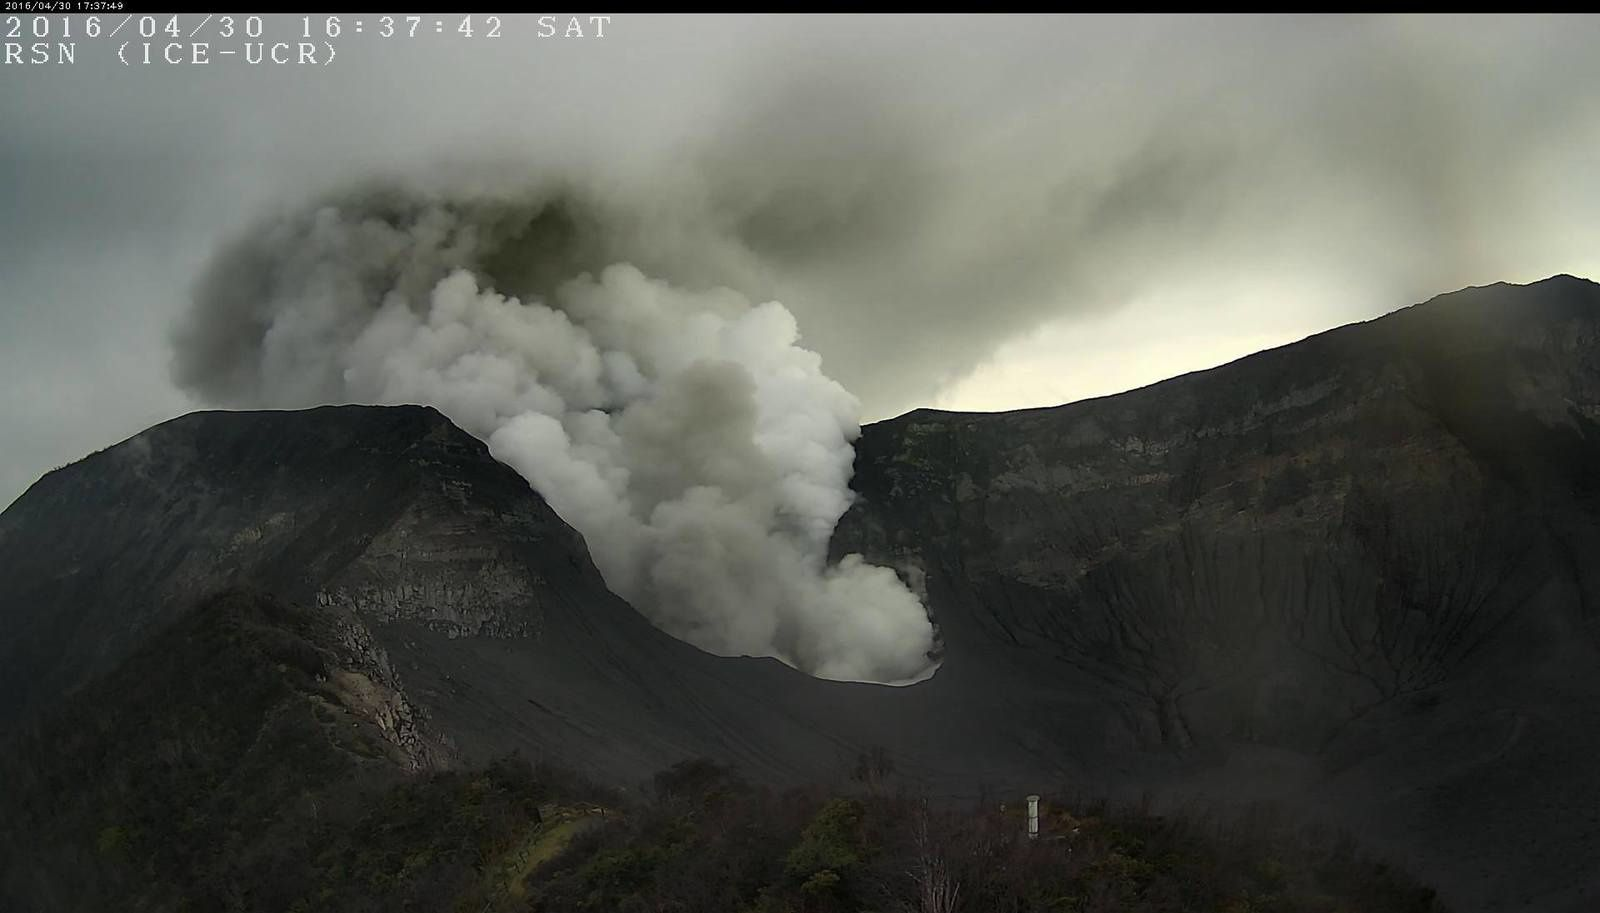 Turrialba - emissions 30.04.2016 / 4:37 pm - RSN webcam